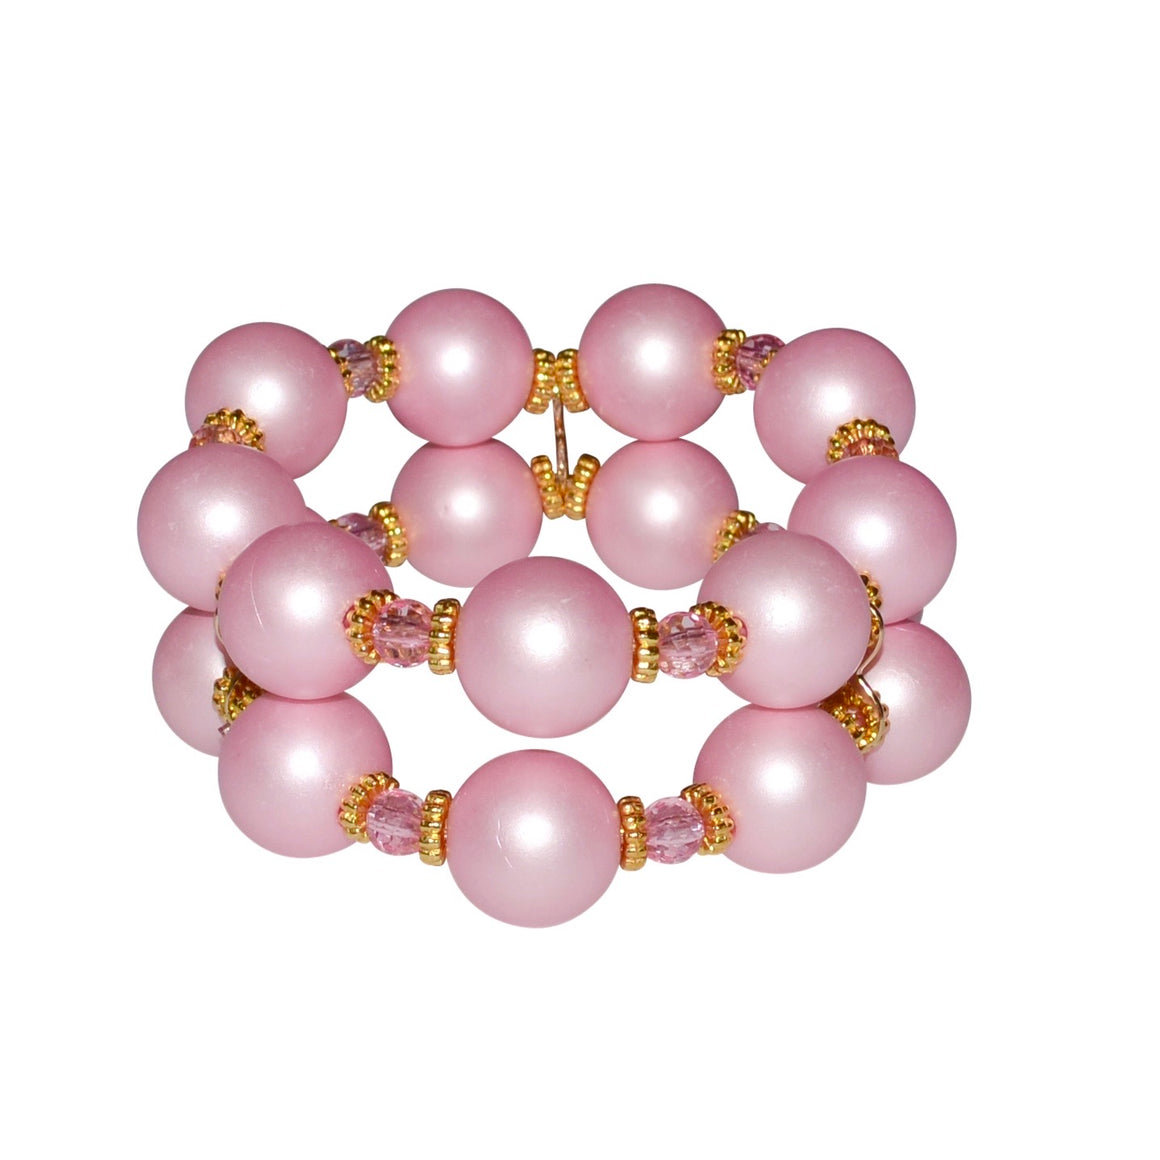 SAVANNAH CUFF IN MATTE PINK PEARL